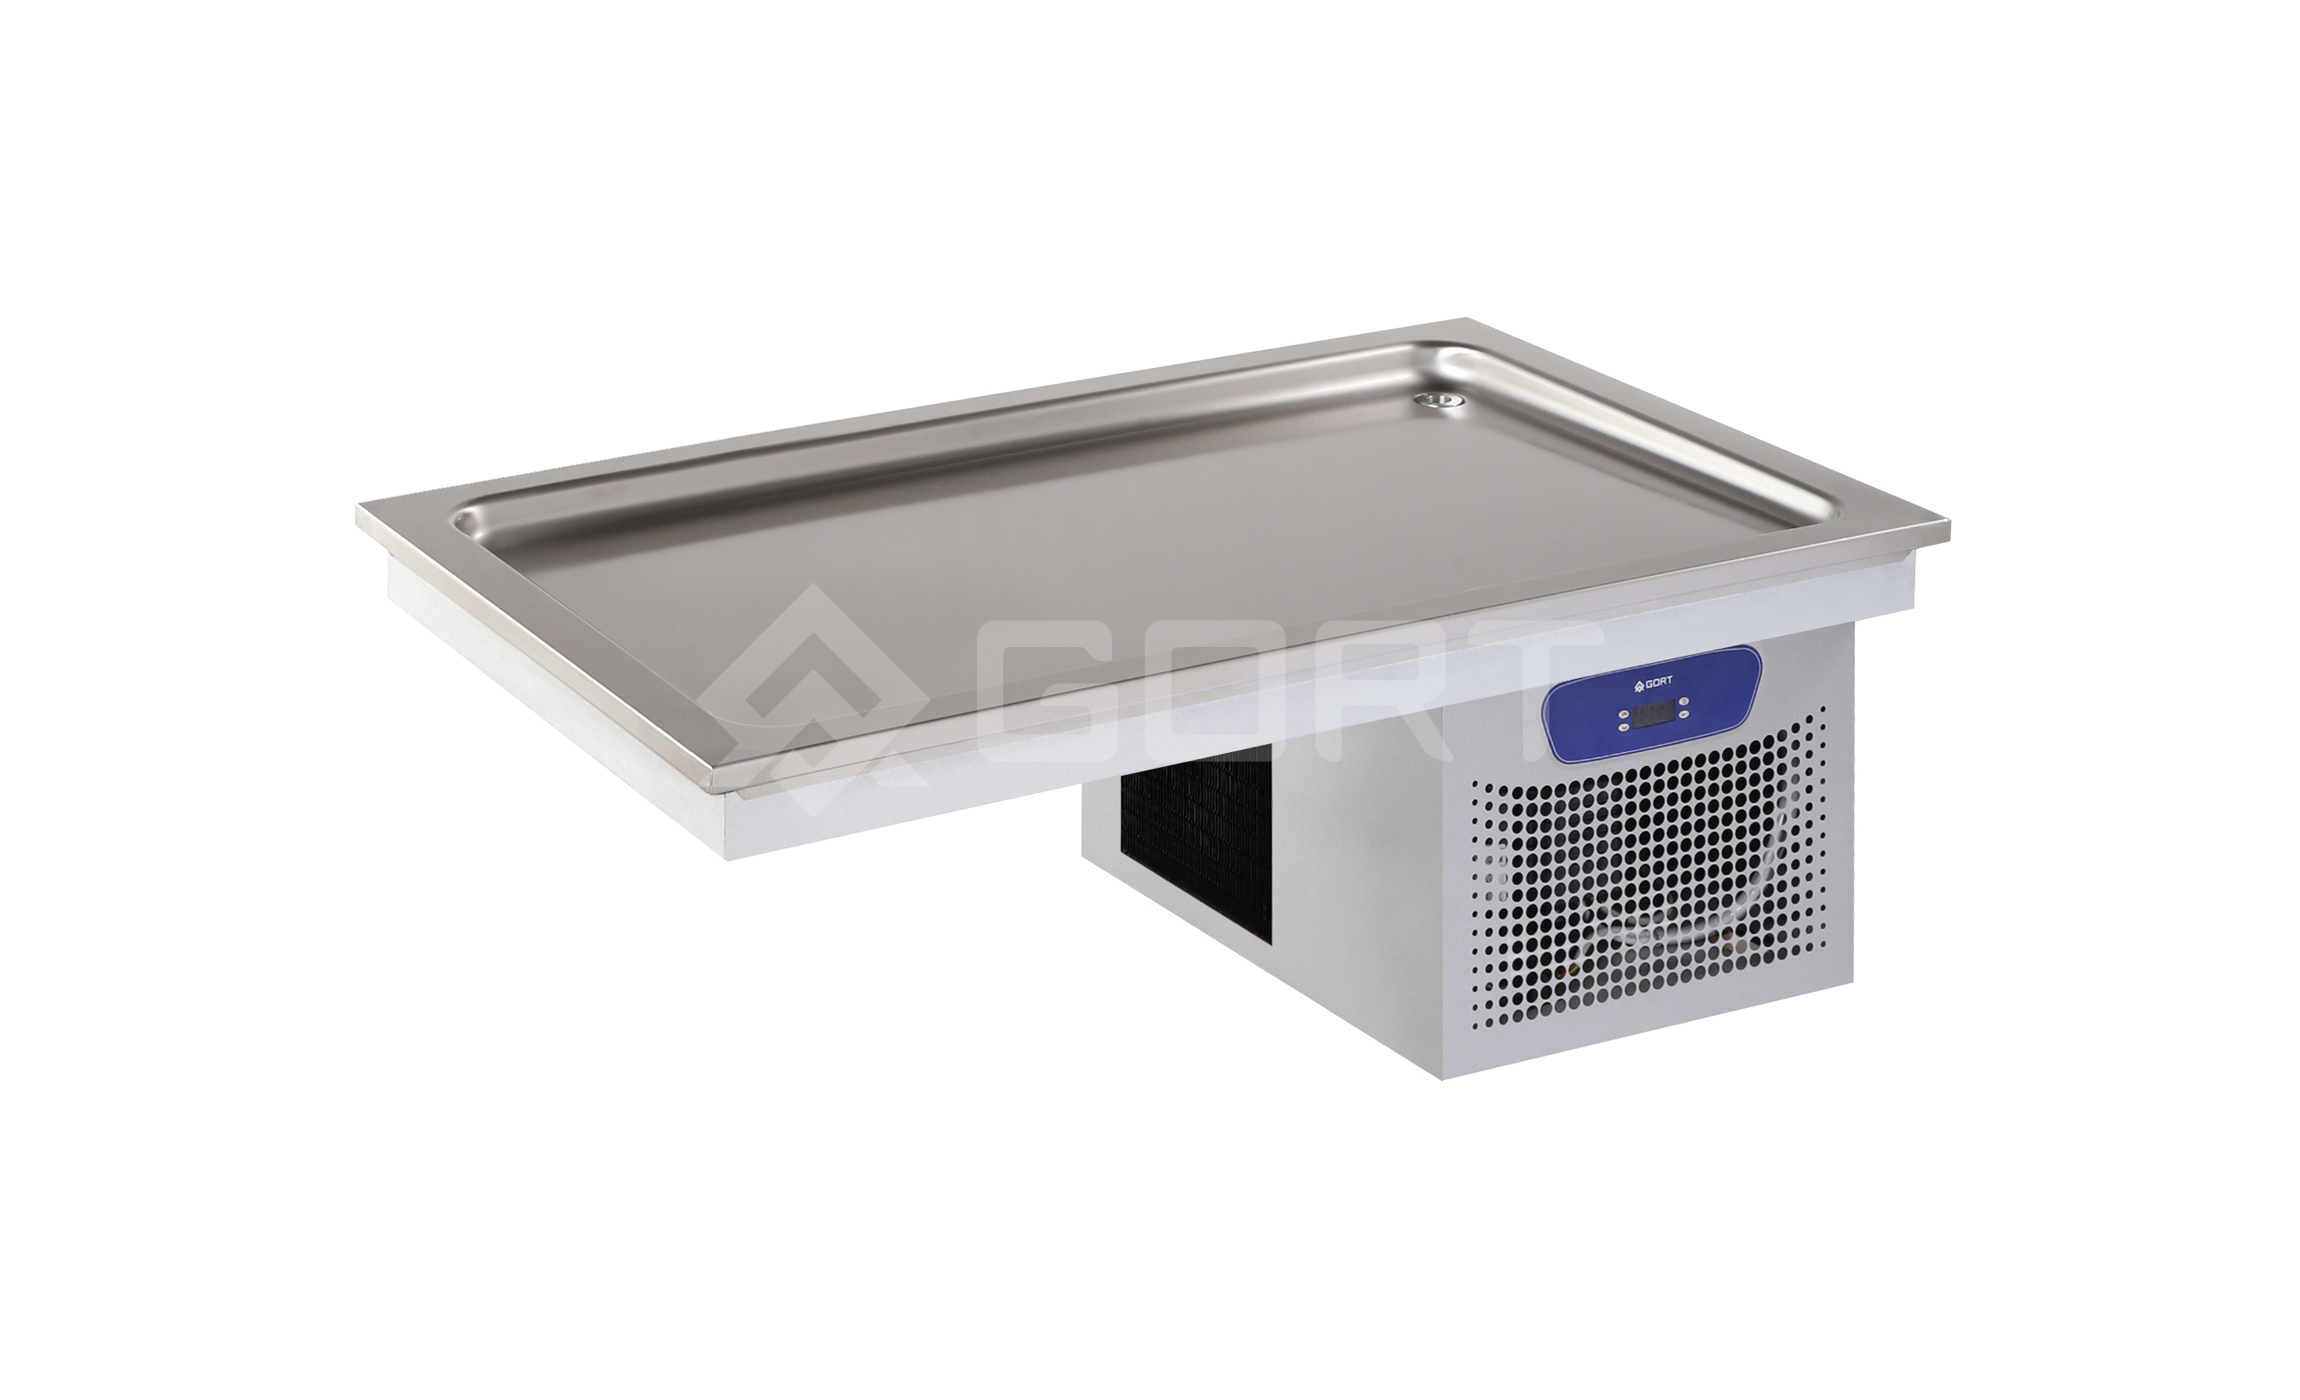 Refrigerated static top DROP-IN, 3 x GN1/1